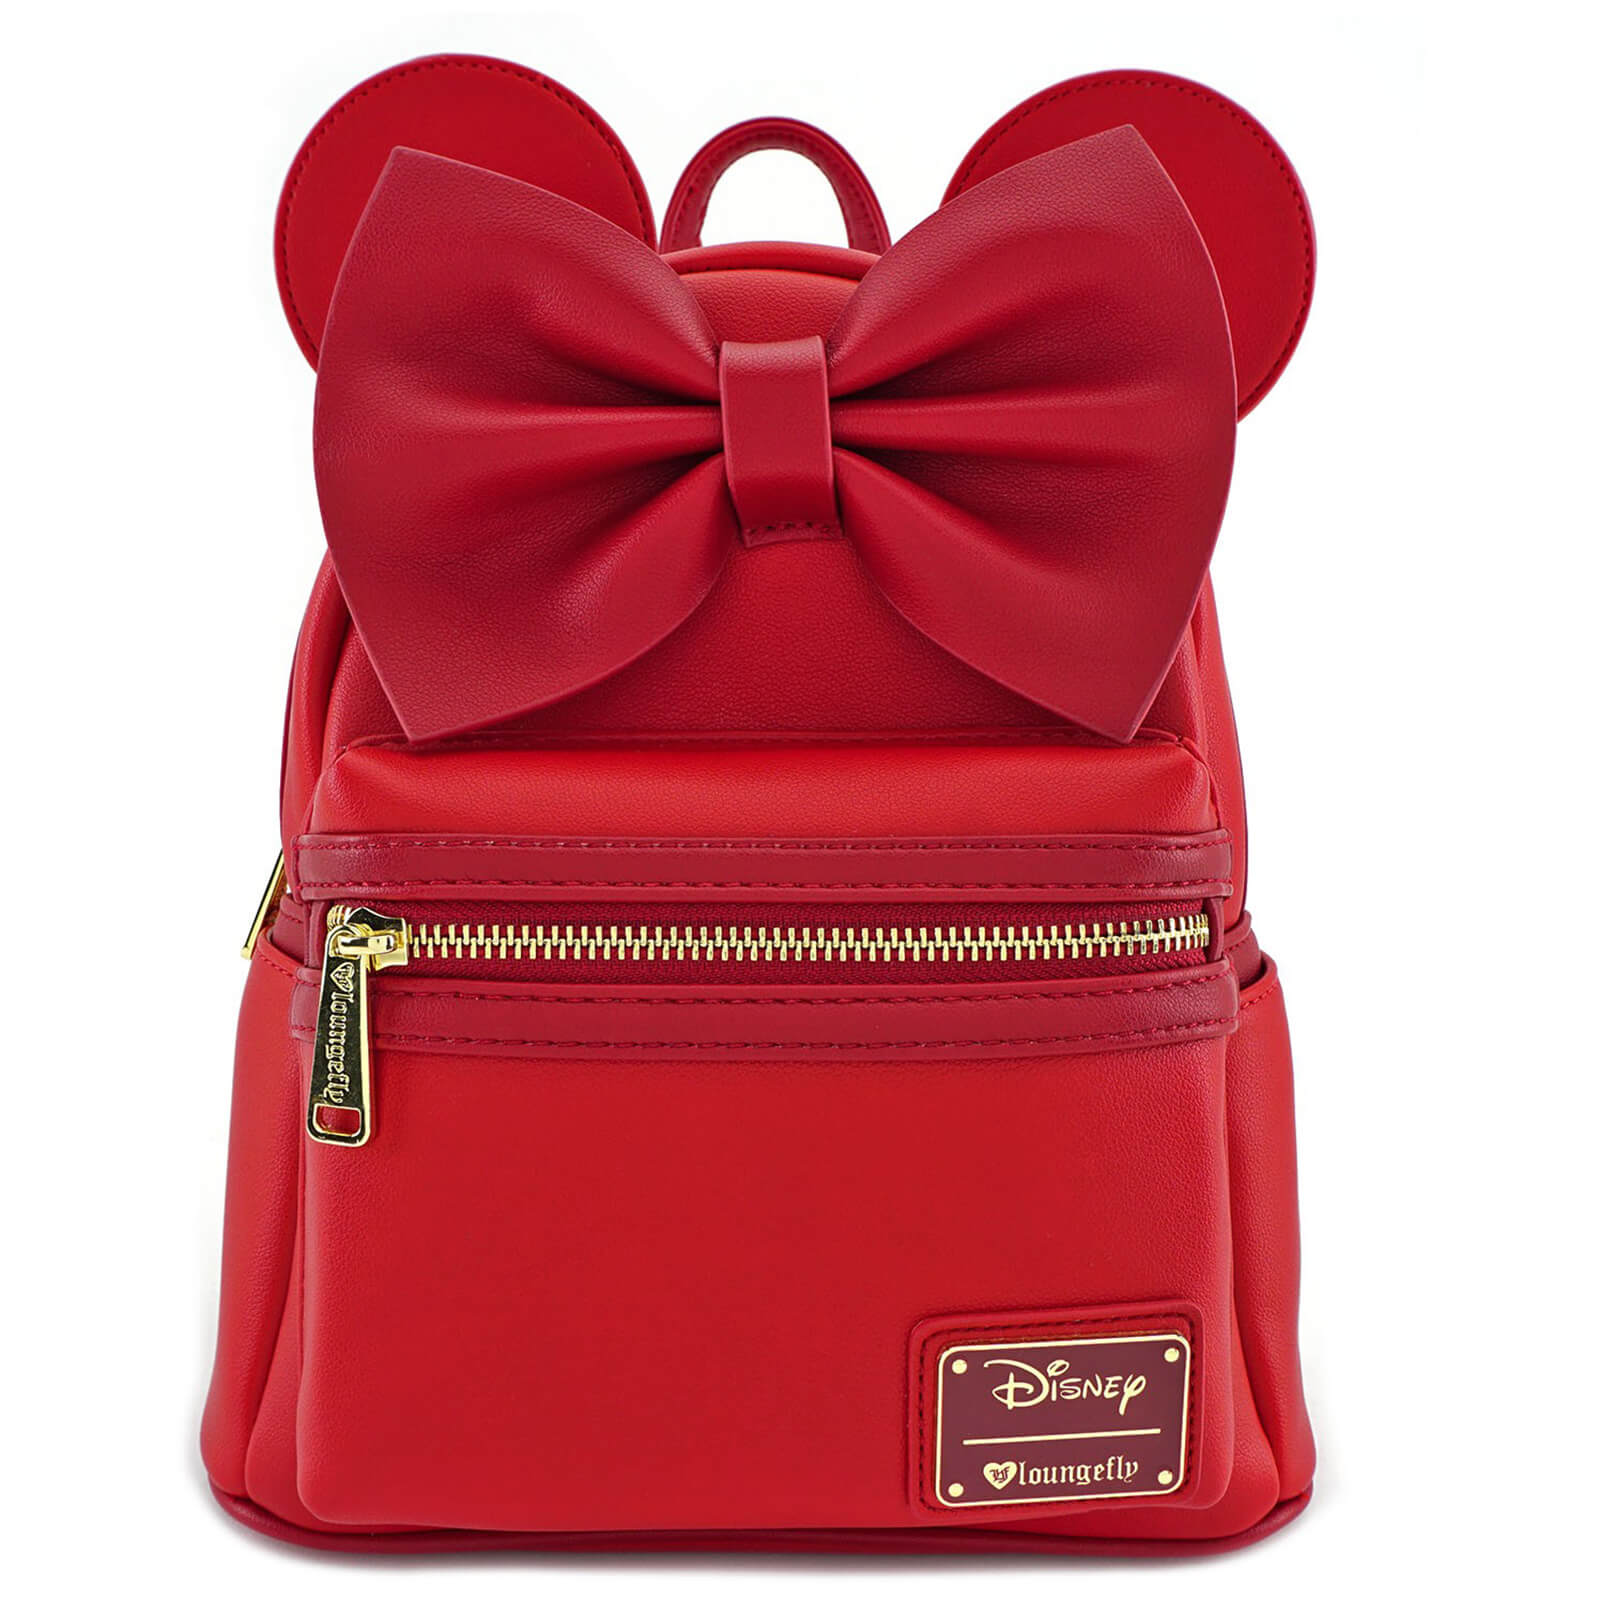 8cbd100ca83 Loungefly Disney Mickey Mouse Minnie Ears Mini Backpack - Red. Product  Details